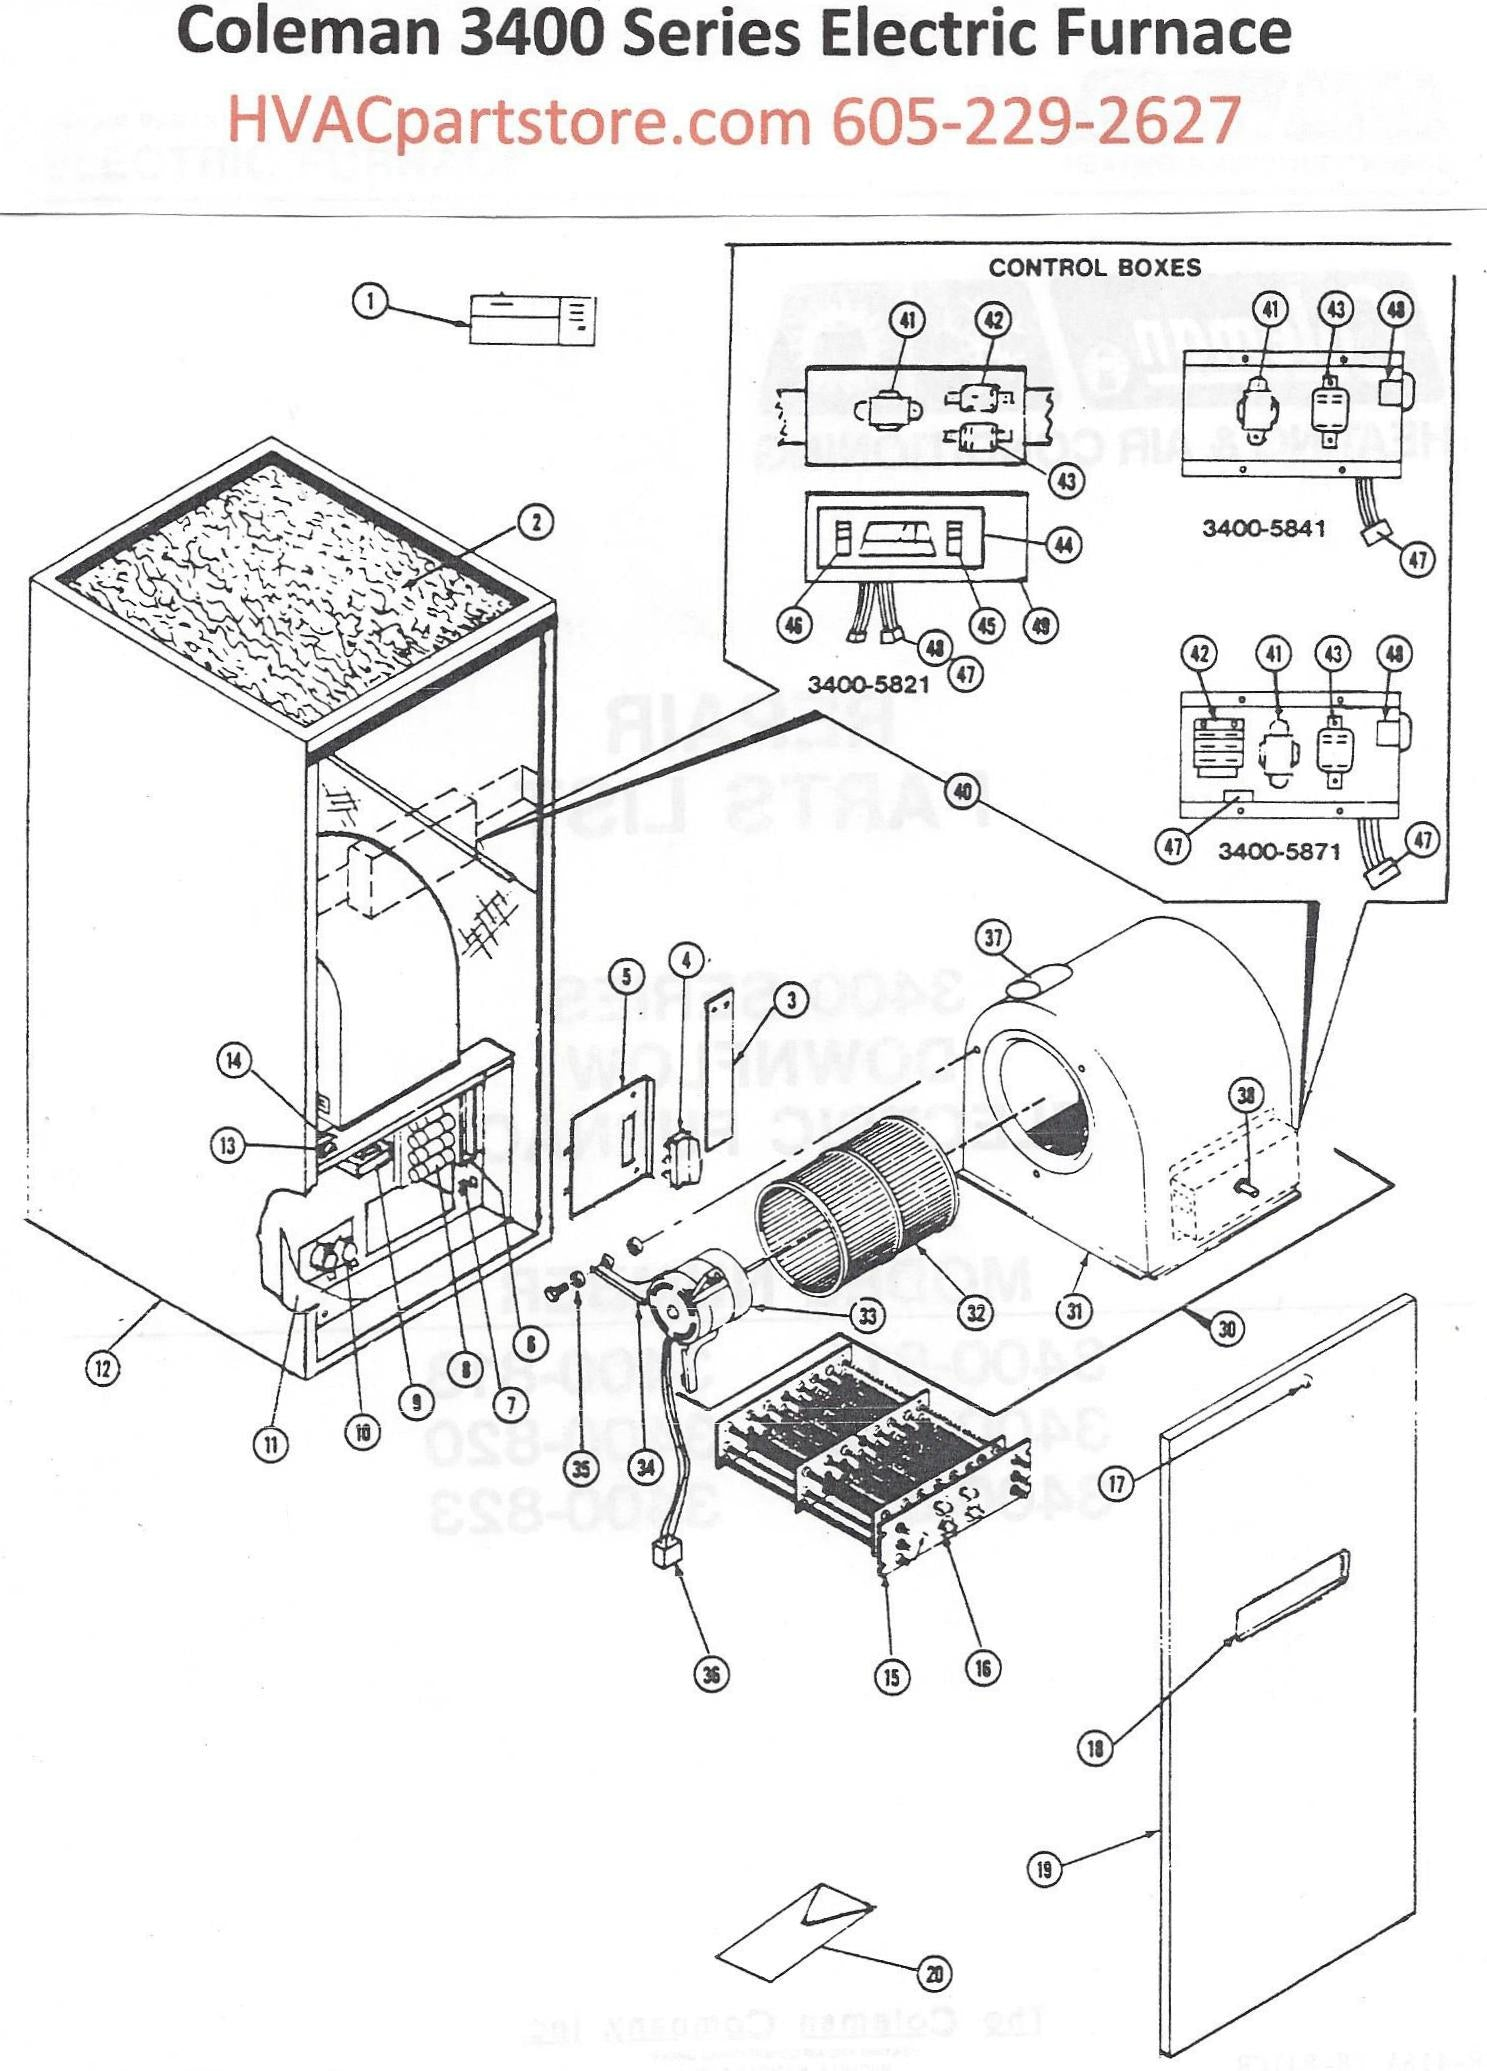 3400 8SeriesDiagram_c66278d3 664a 4321 8615 483111636a4e?1818840816544769902 3400 815 coleman electric furnace parts hvacpartstore Gas Furnace Wiring Diagram at bakdesigns.co